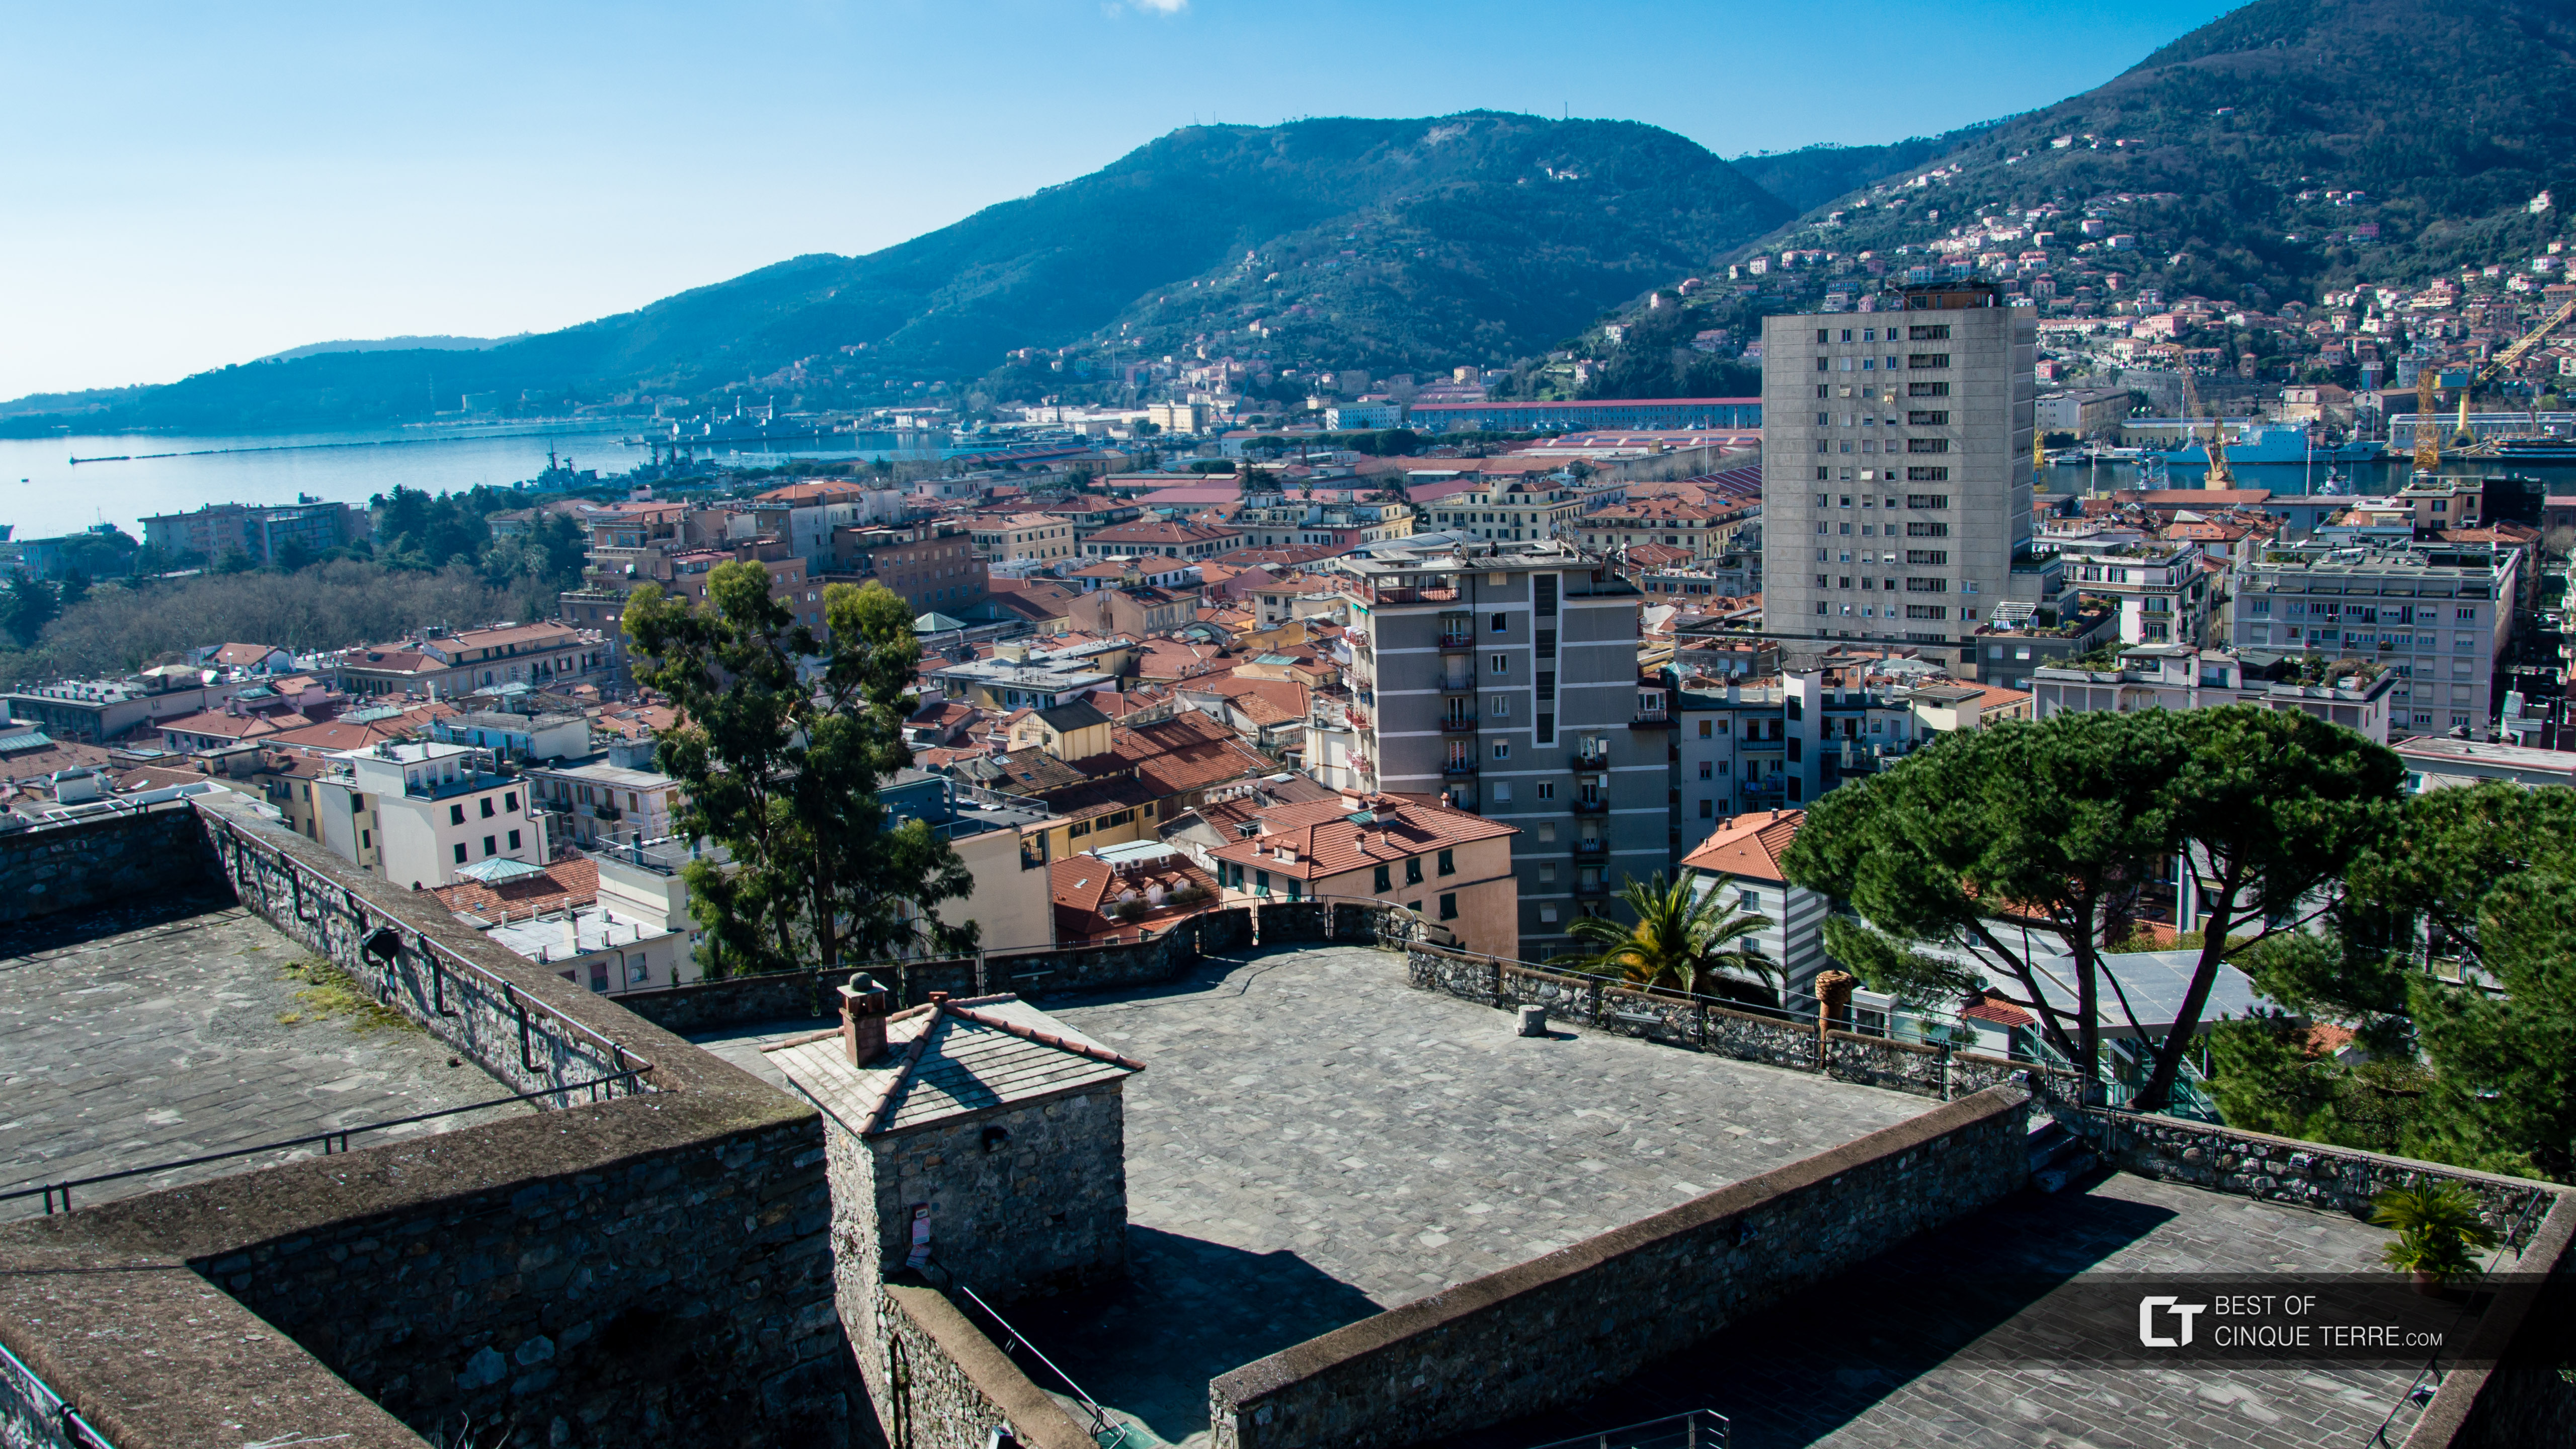 View of the city from the terrace of St. George's Castle, La Spezia, Italy